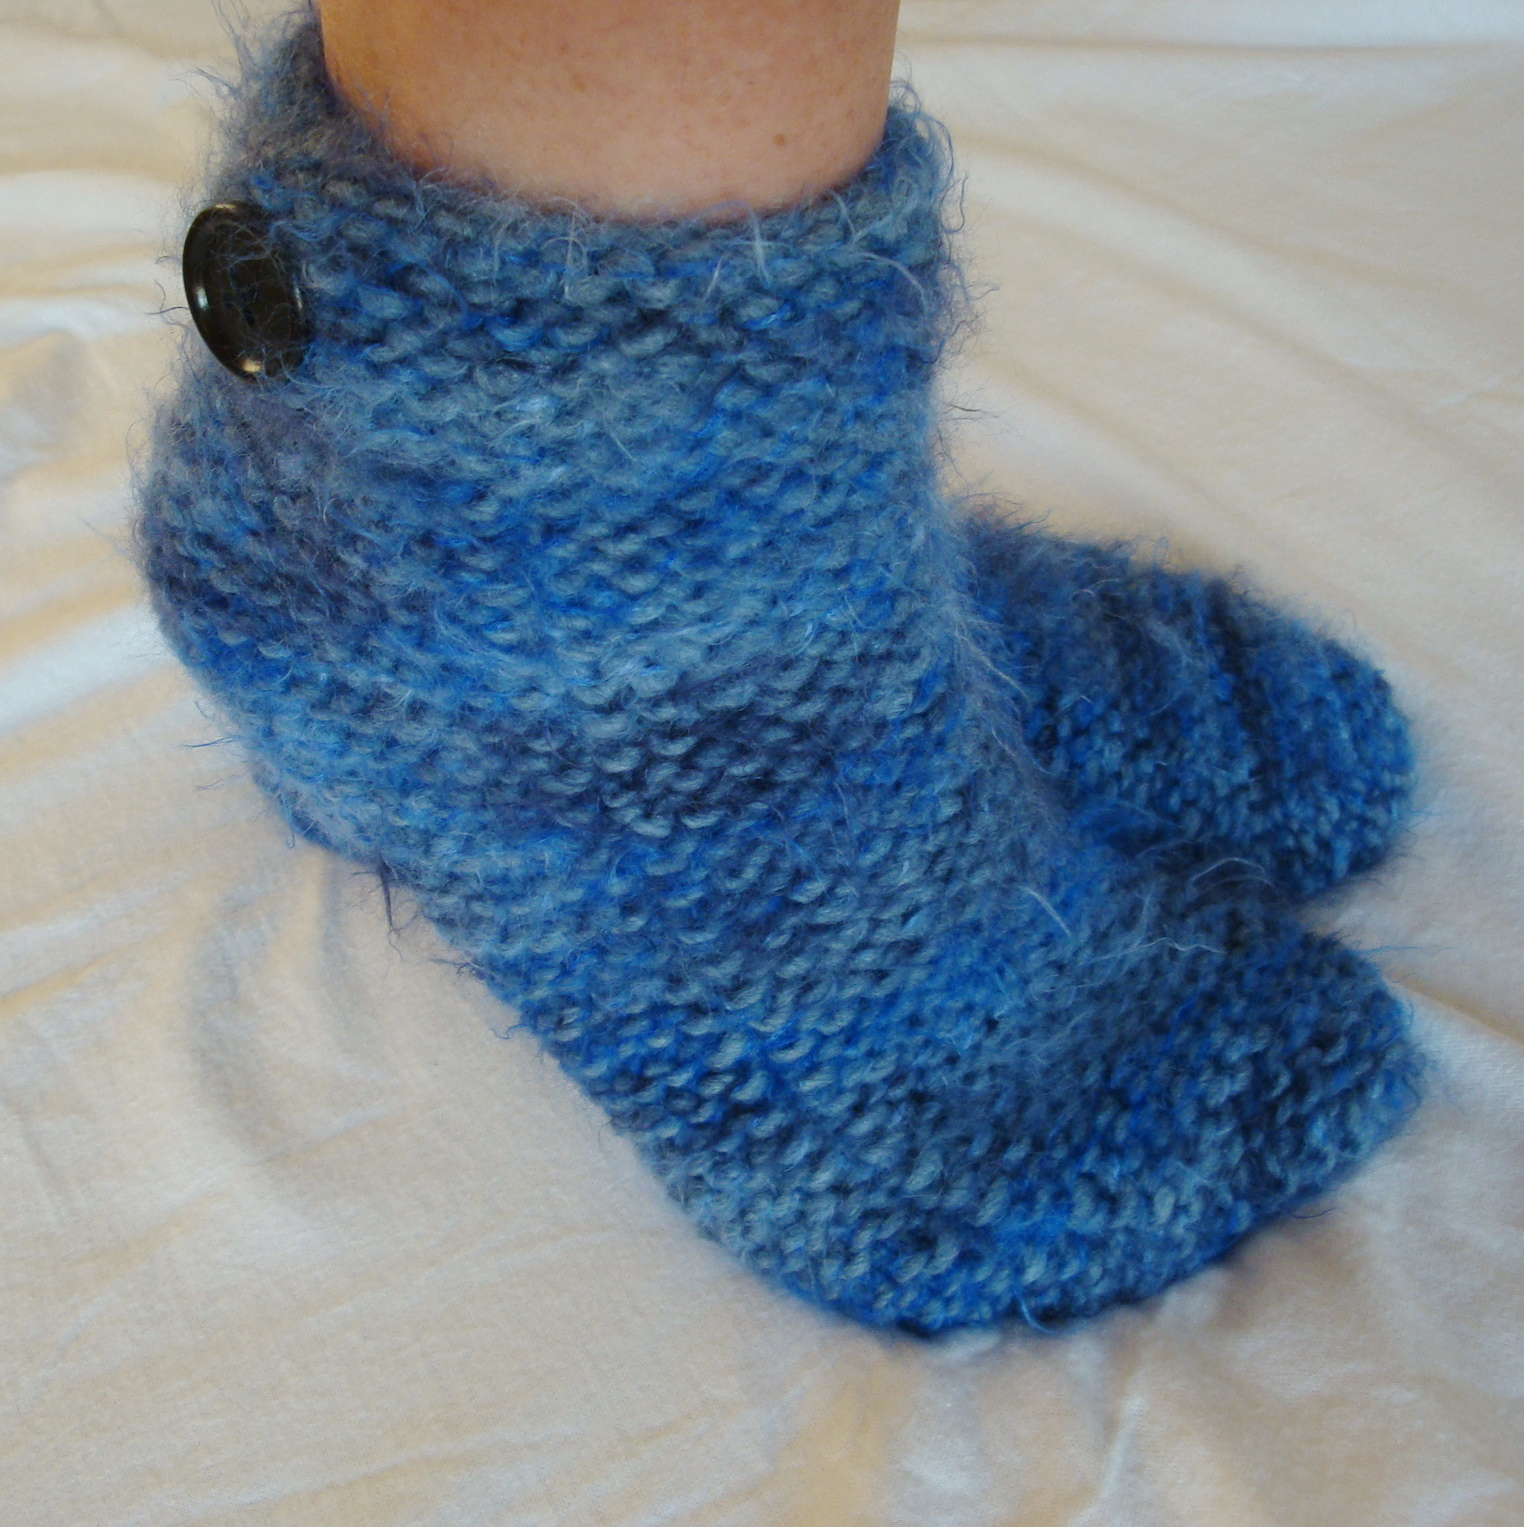 Knitting Women S Socks : Knit boot slippers images childrens patterned